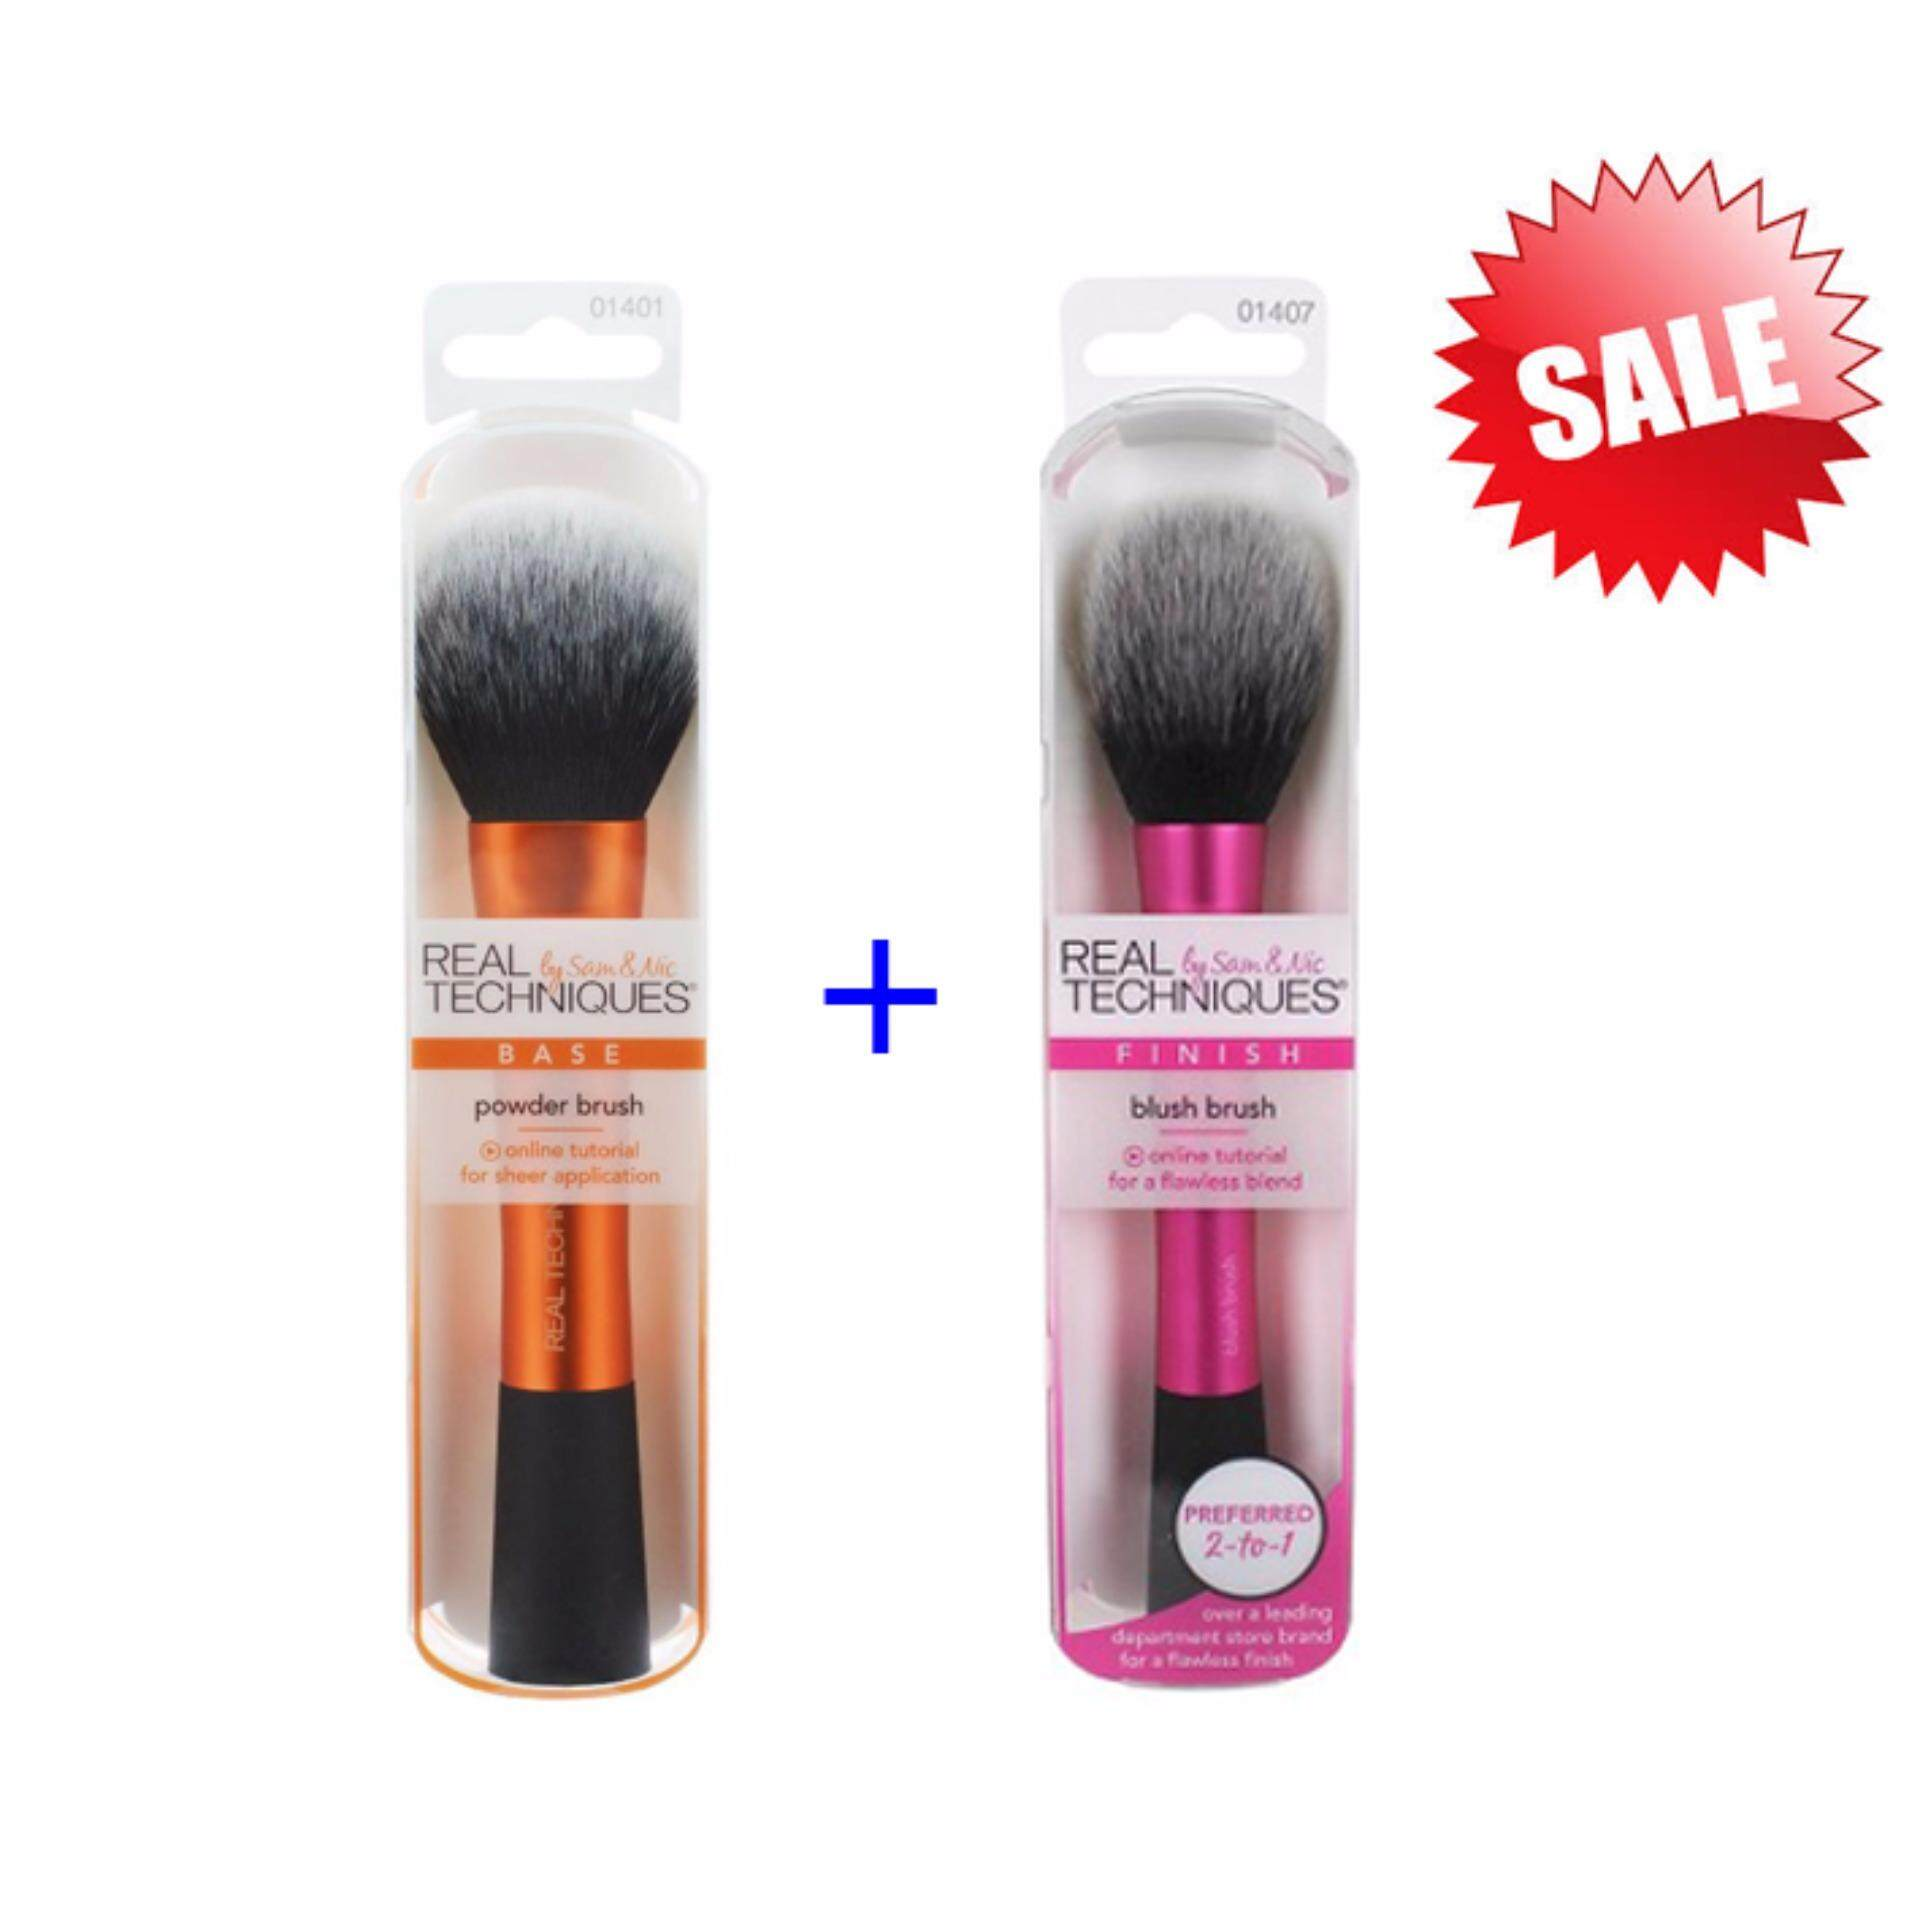 Real Techniques แปรงแต่งหน้า Blush Brush + Powder Brush